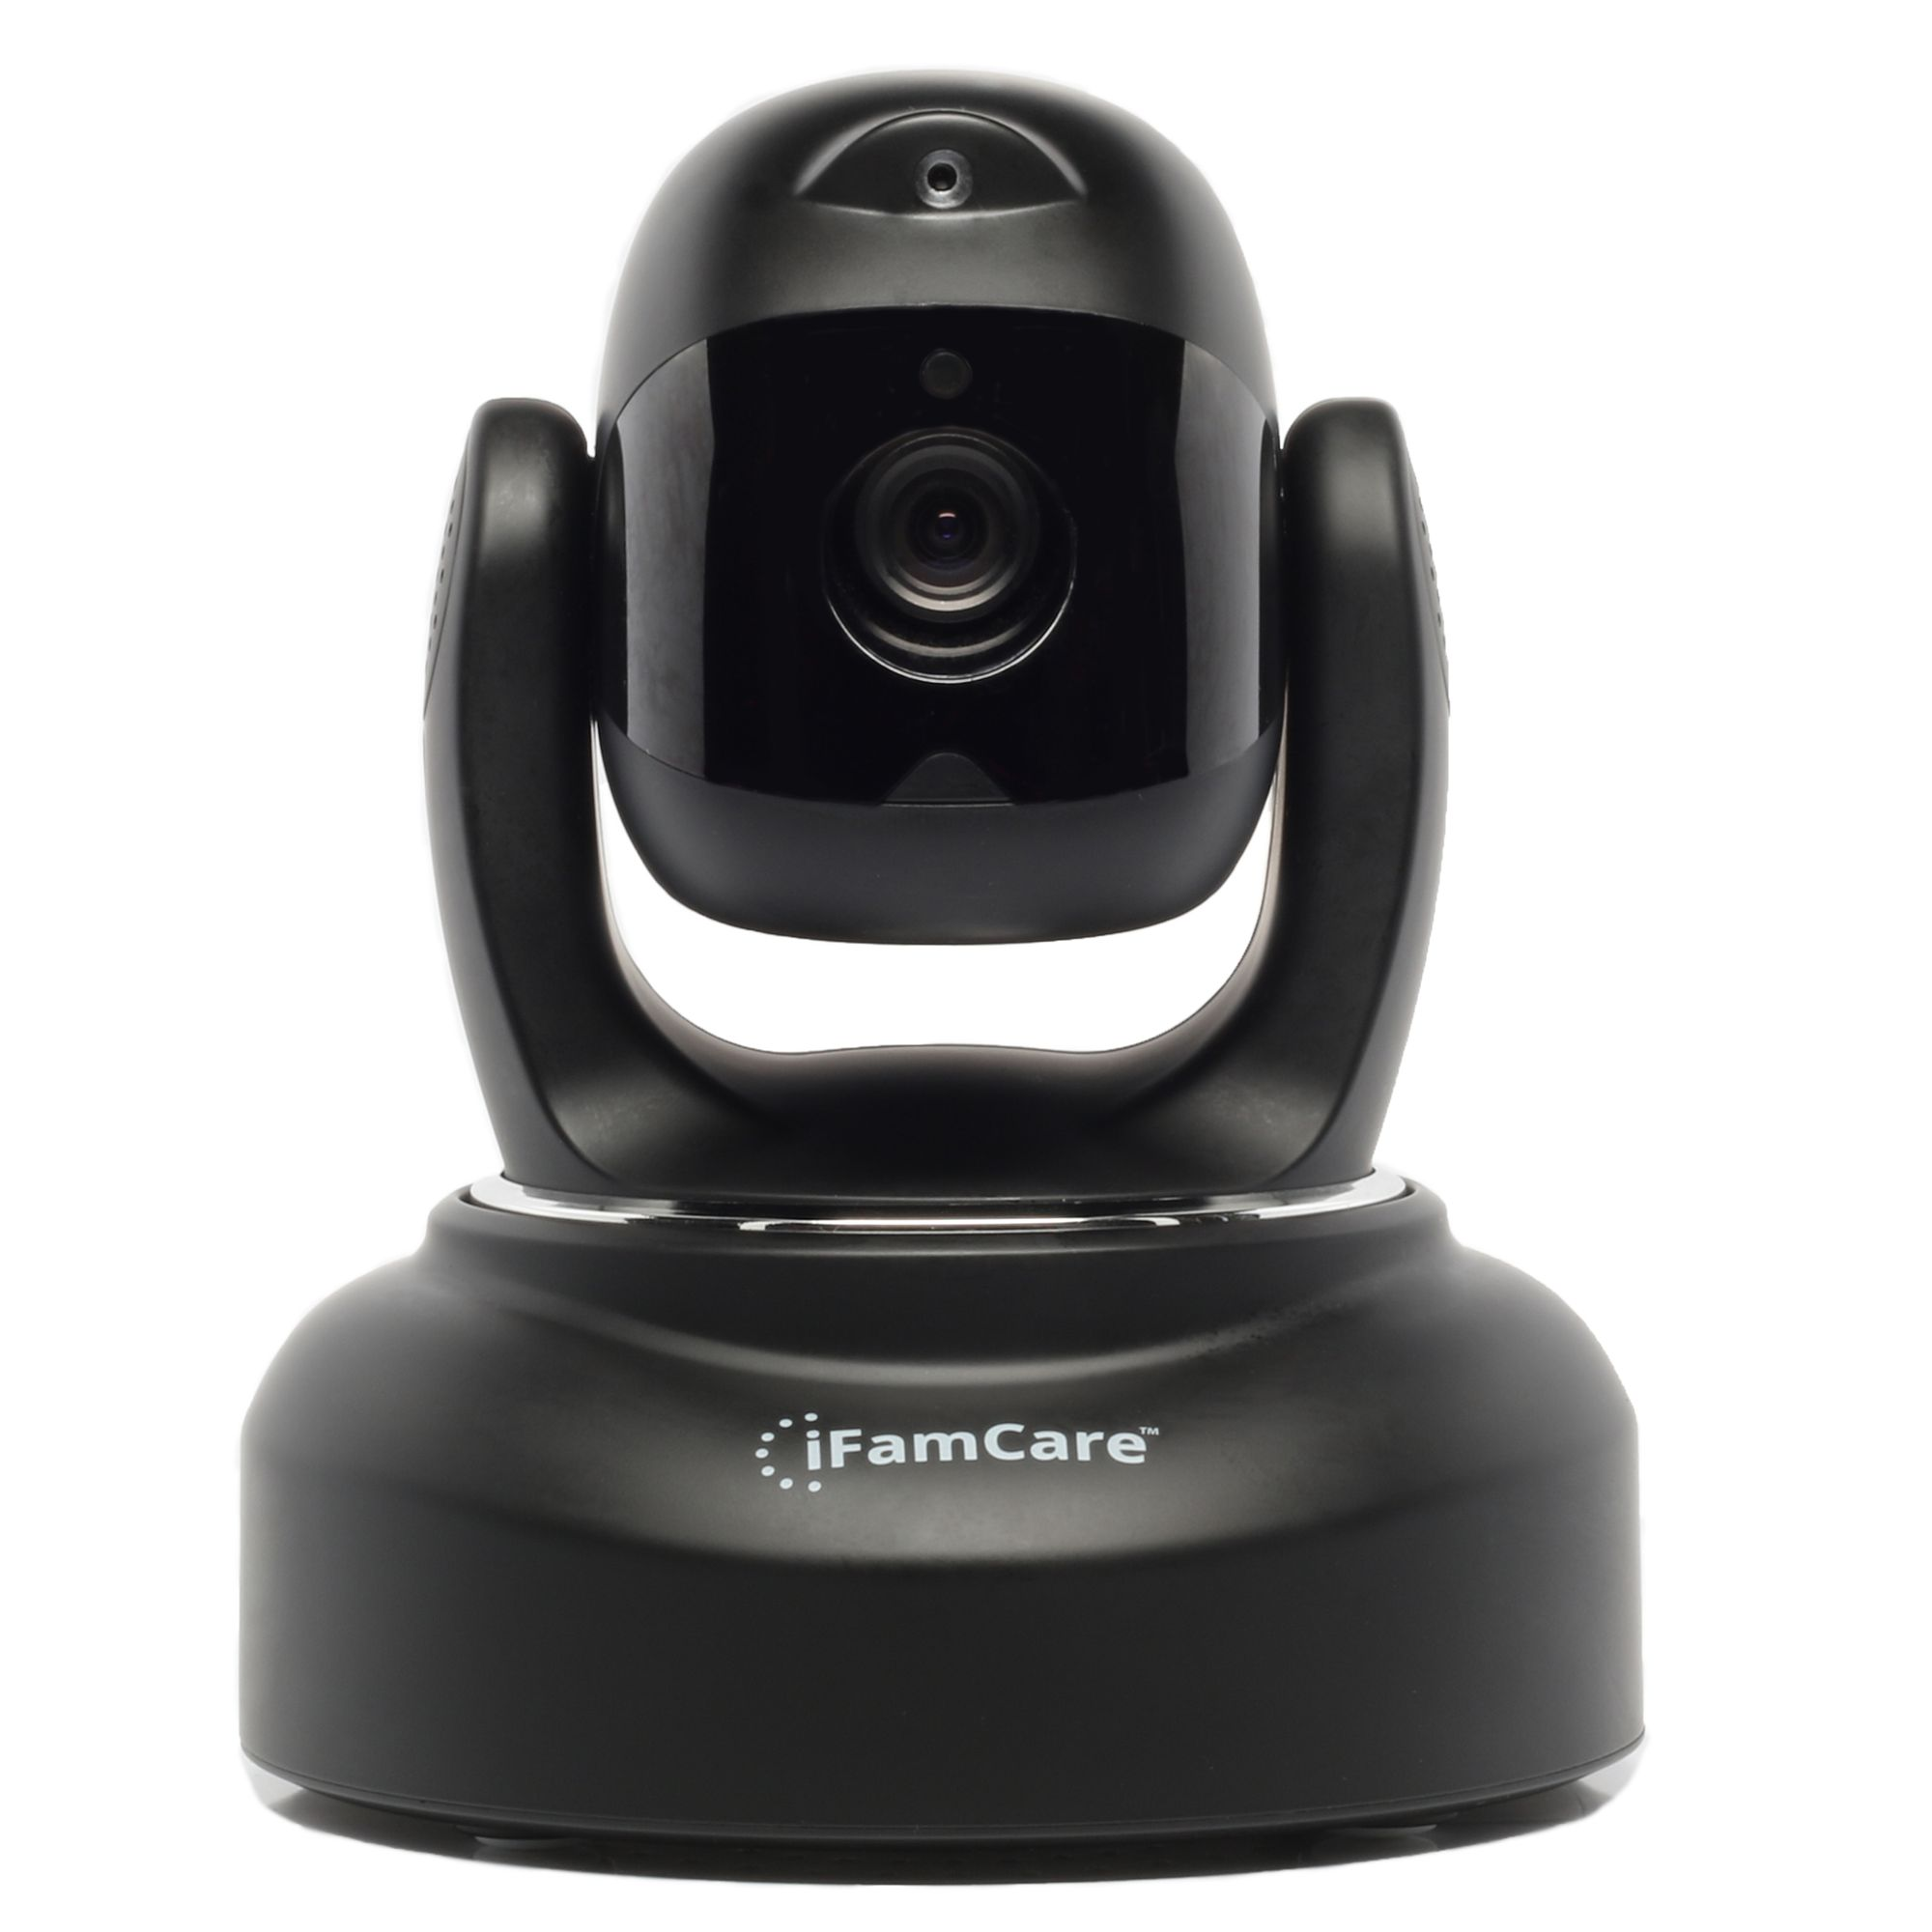 Ifamcare Helmet Video Monitor Black